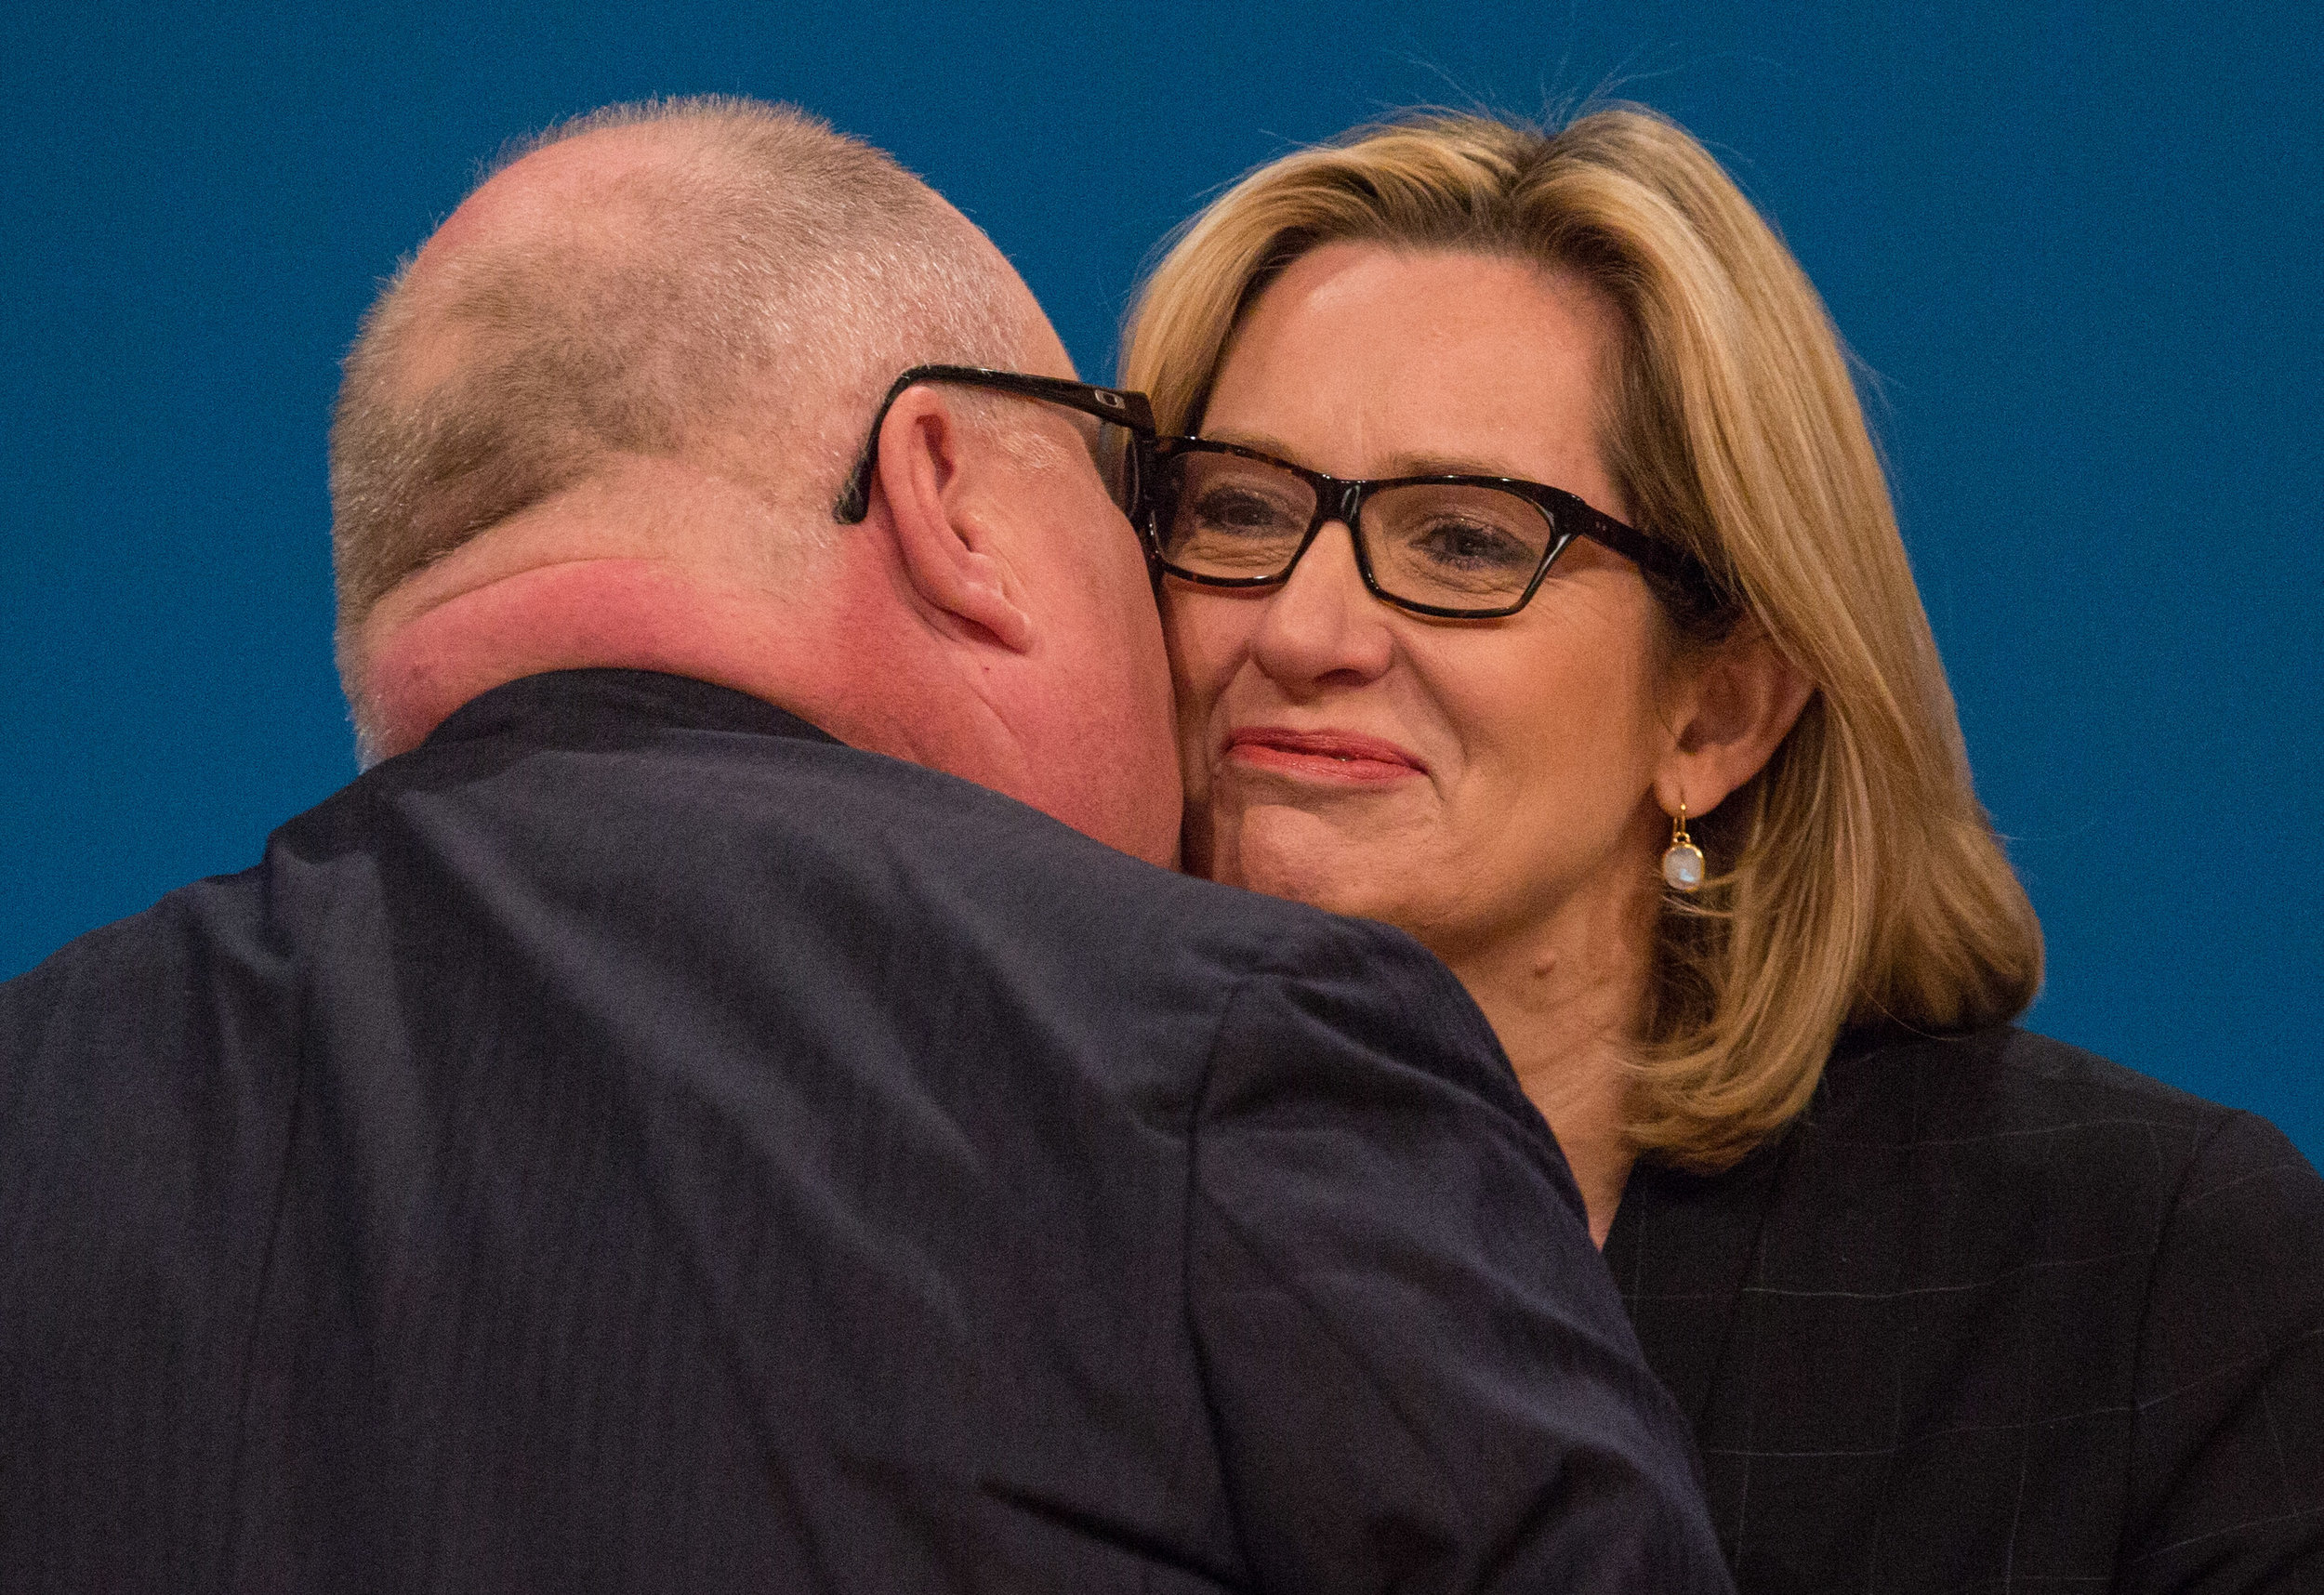 Eric Pickles kissing Amber Rudd